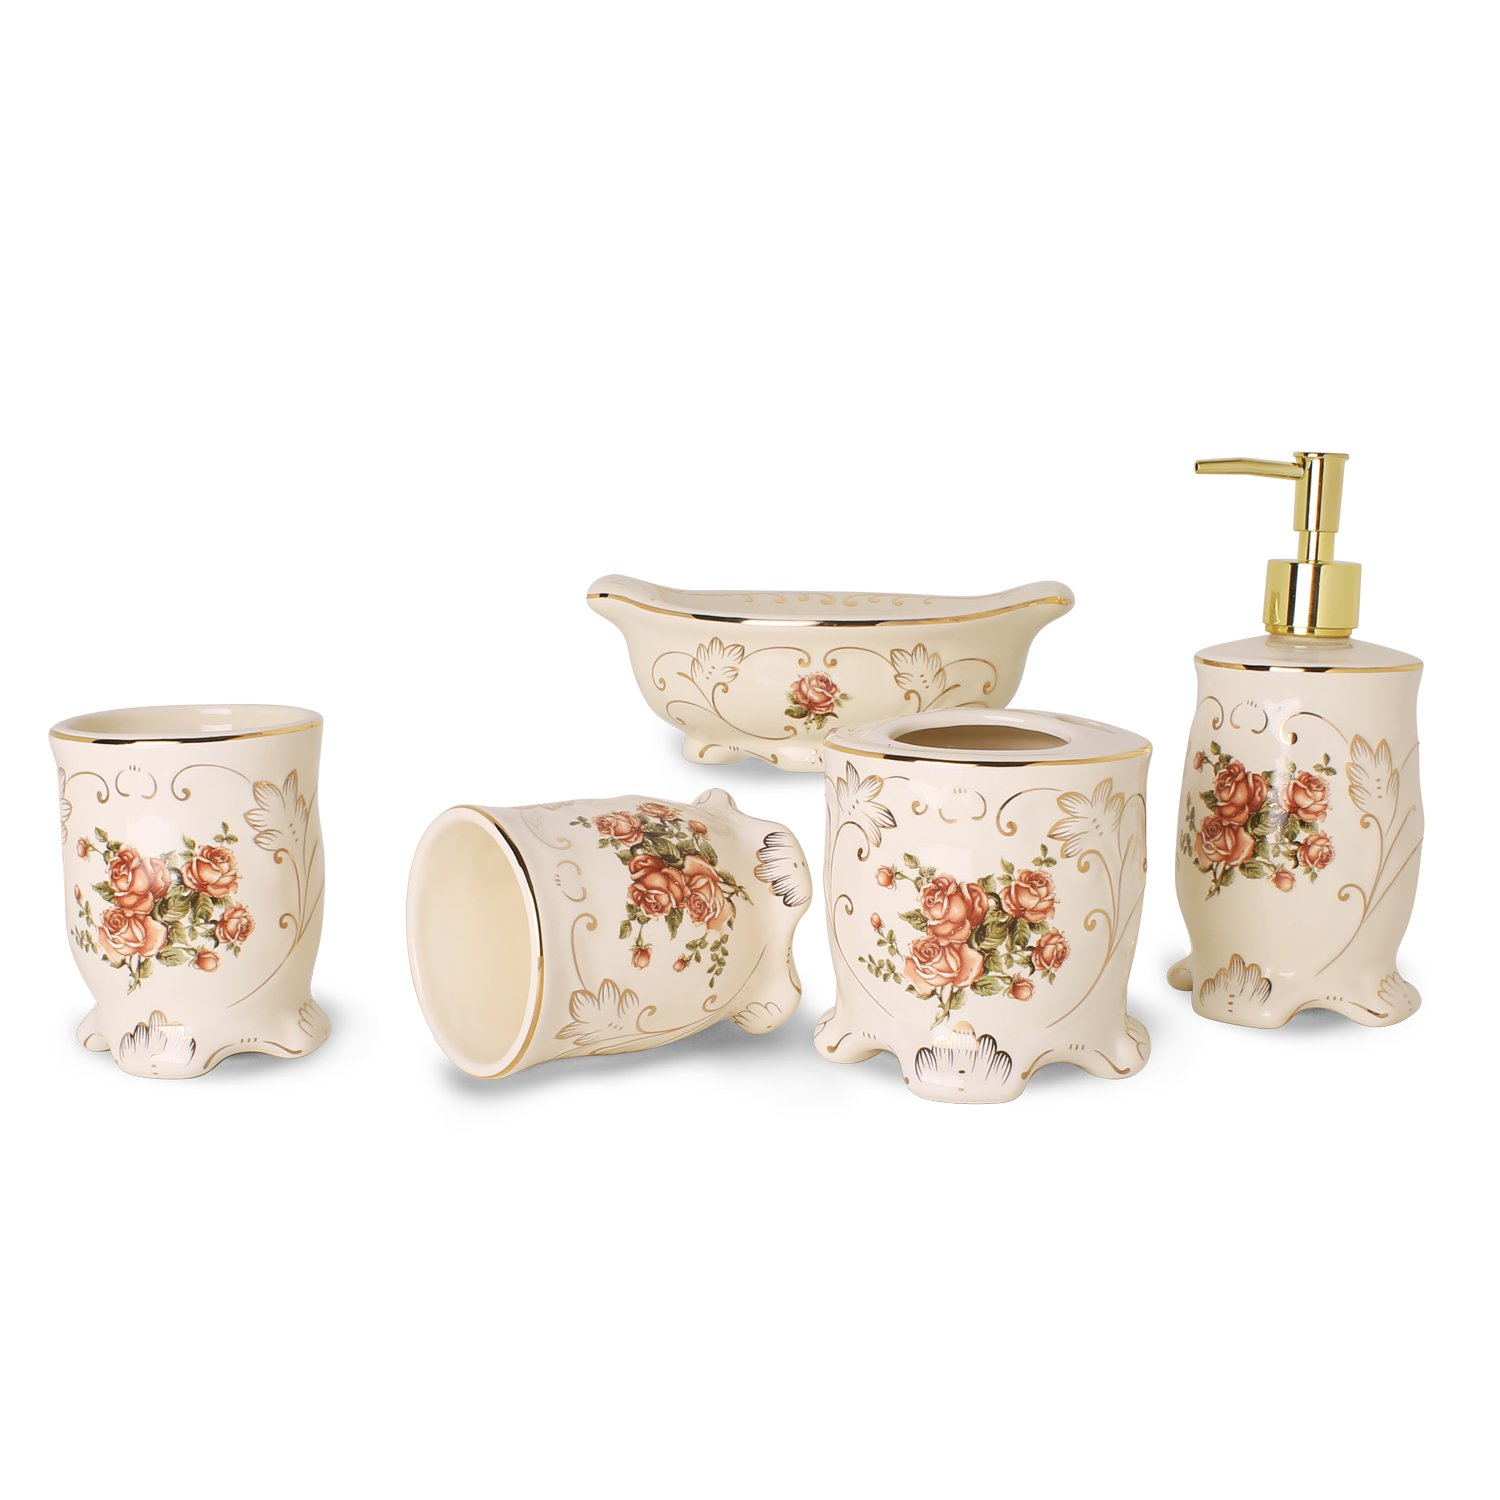 YALONG 5-Piece Red Rose Floral Ceramic Bathroom Accessory Set, Includes Soap/Lotion Dispenser, Toothbrush Holder, Tumbler, and Soap Dish for Father's Day